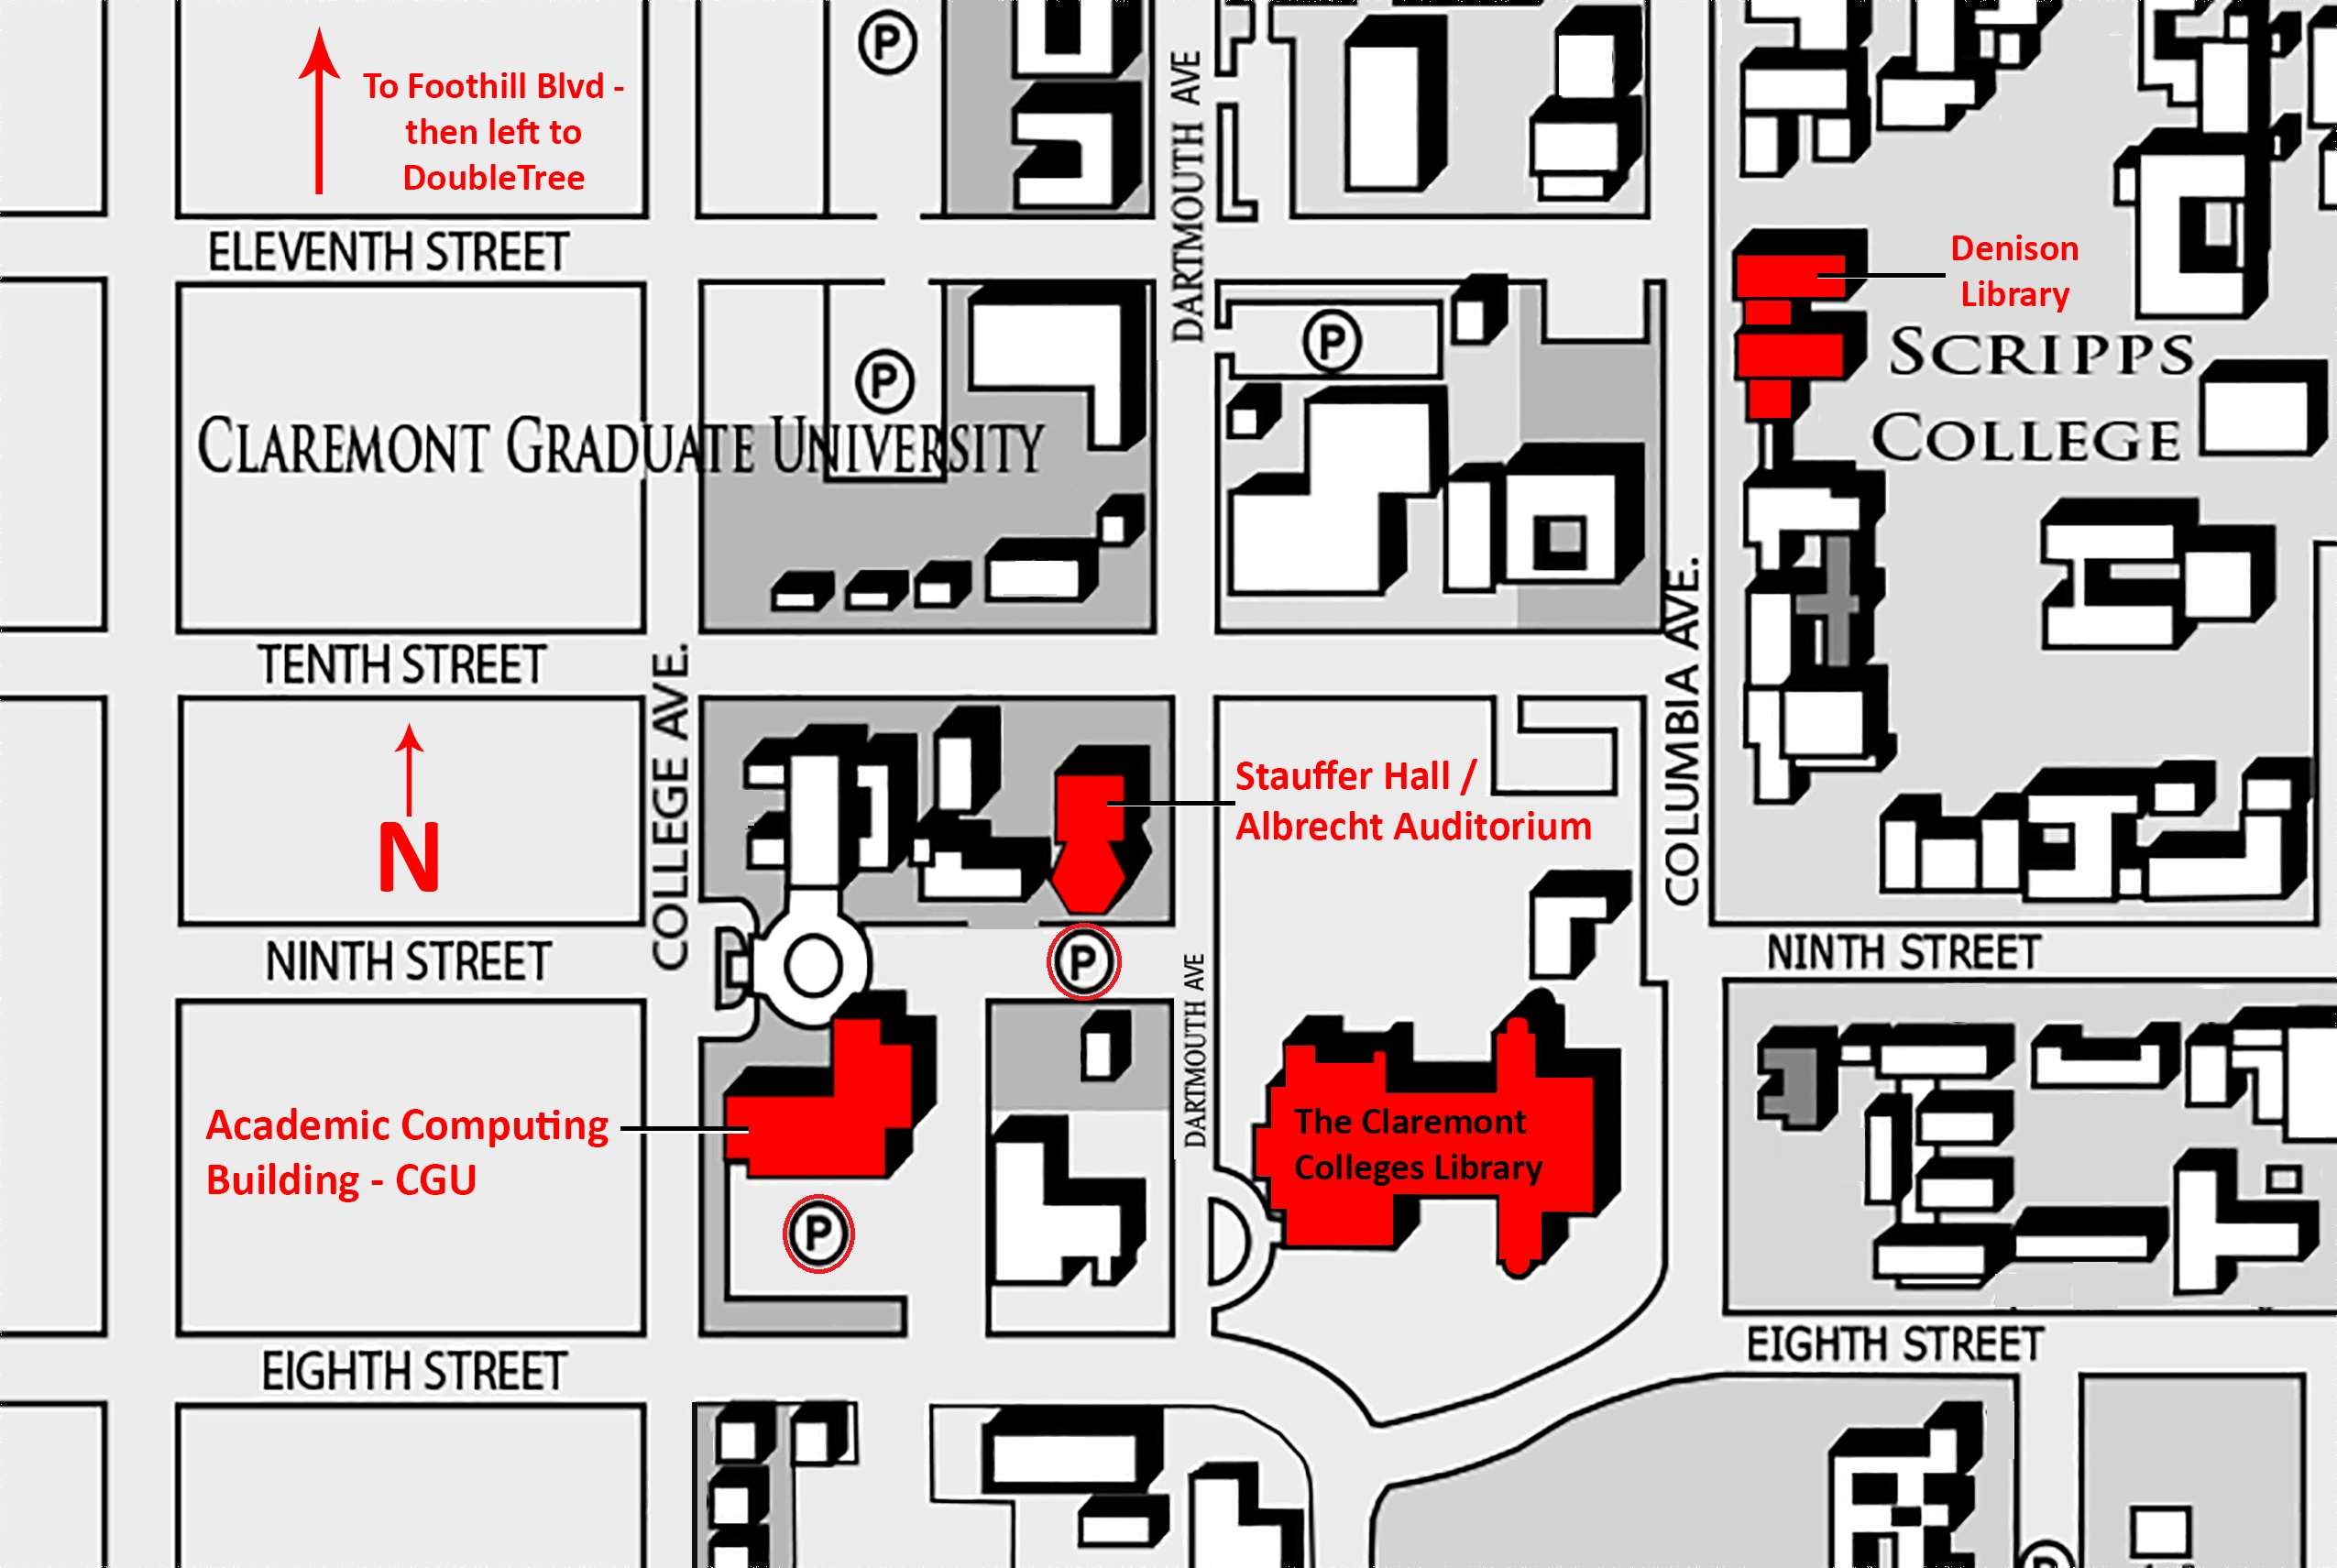 Campus map for symposium